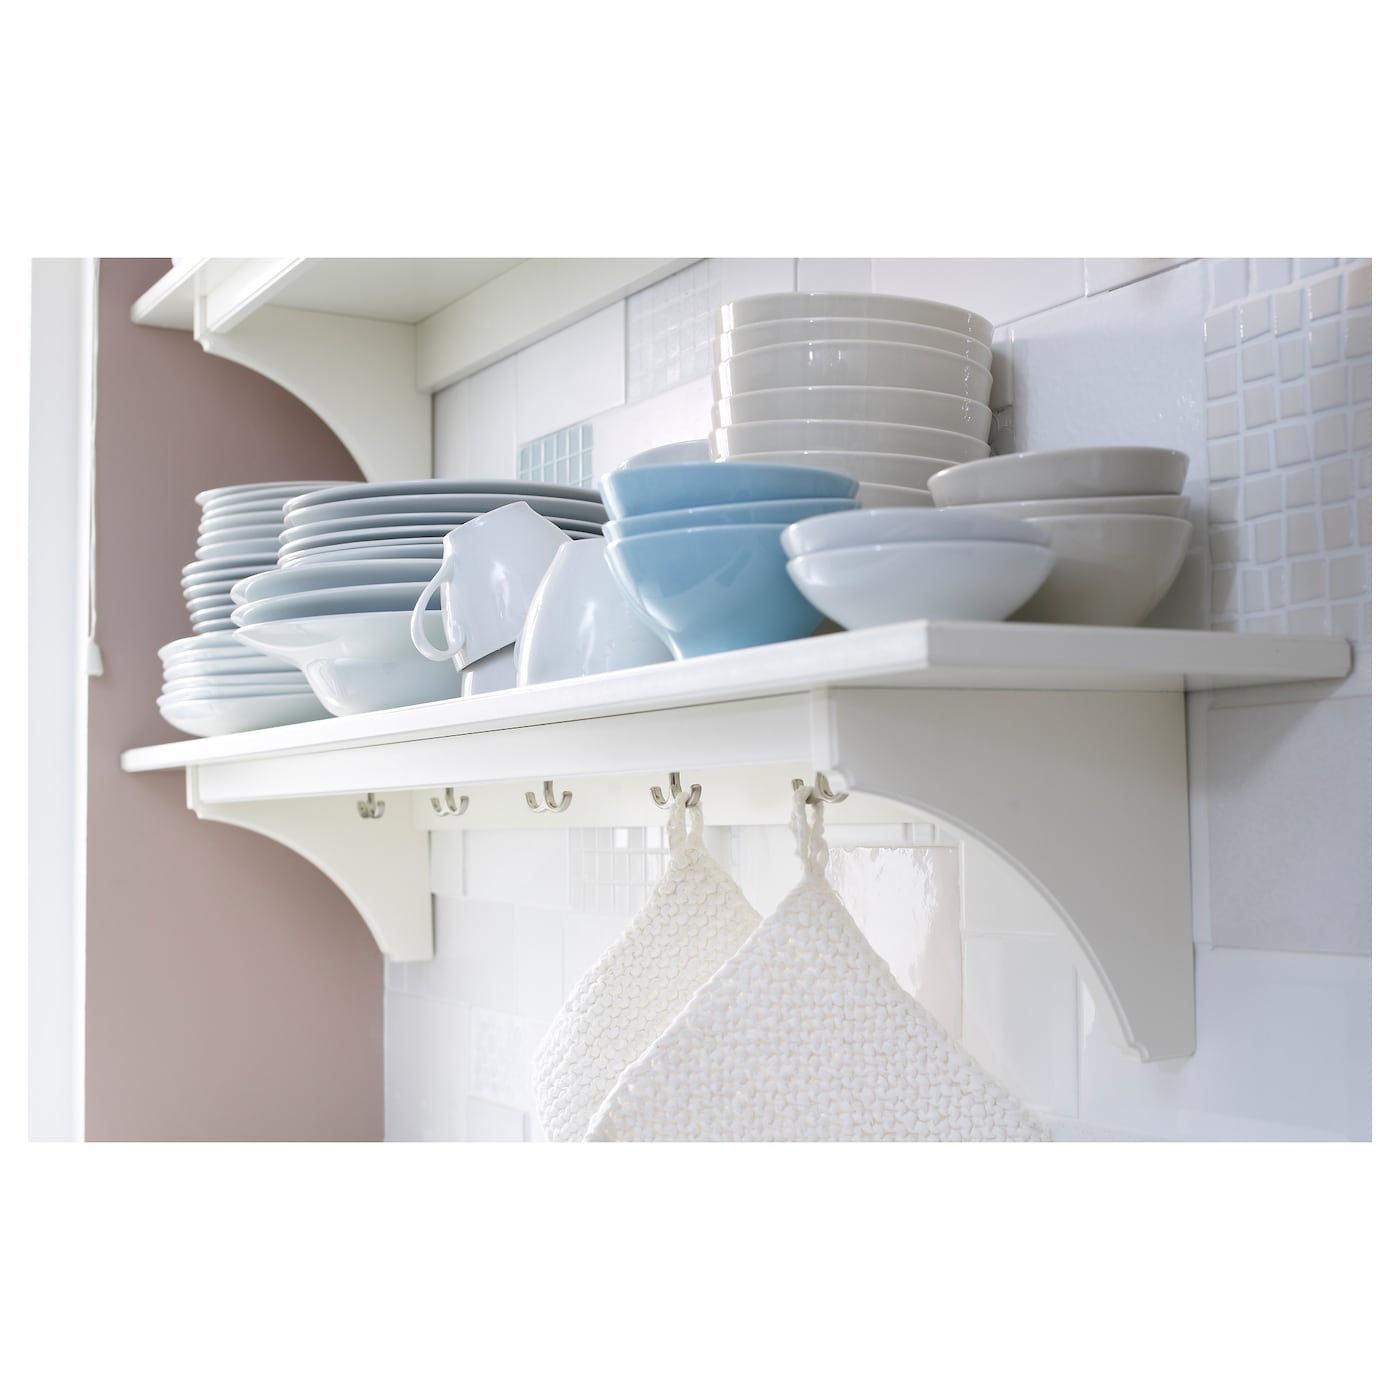 White Kitchen Shelf: STENSTORP Wall Shelf White 120 Cm